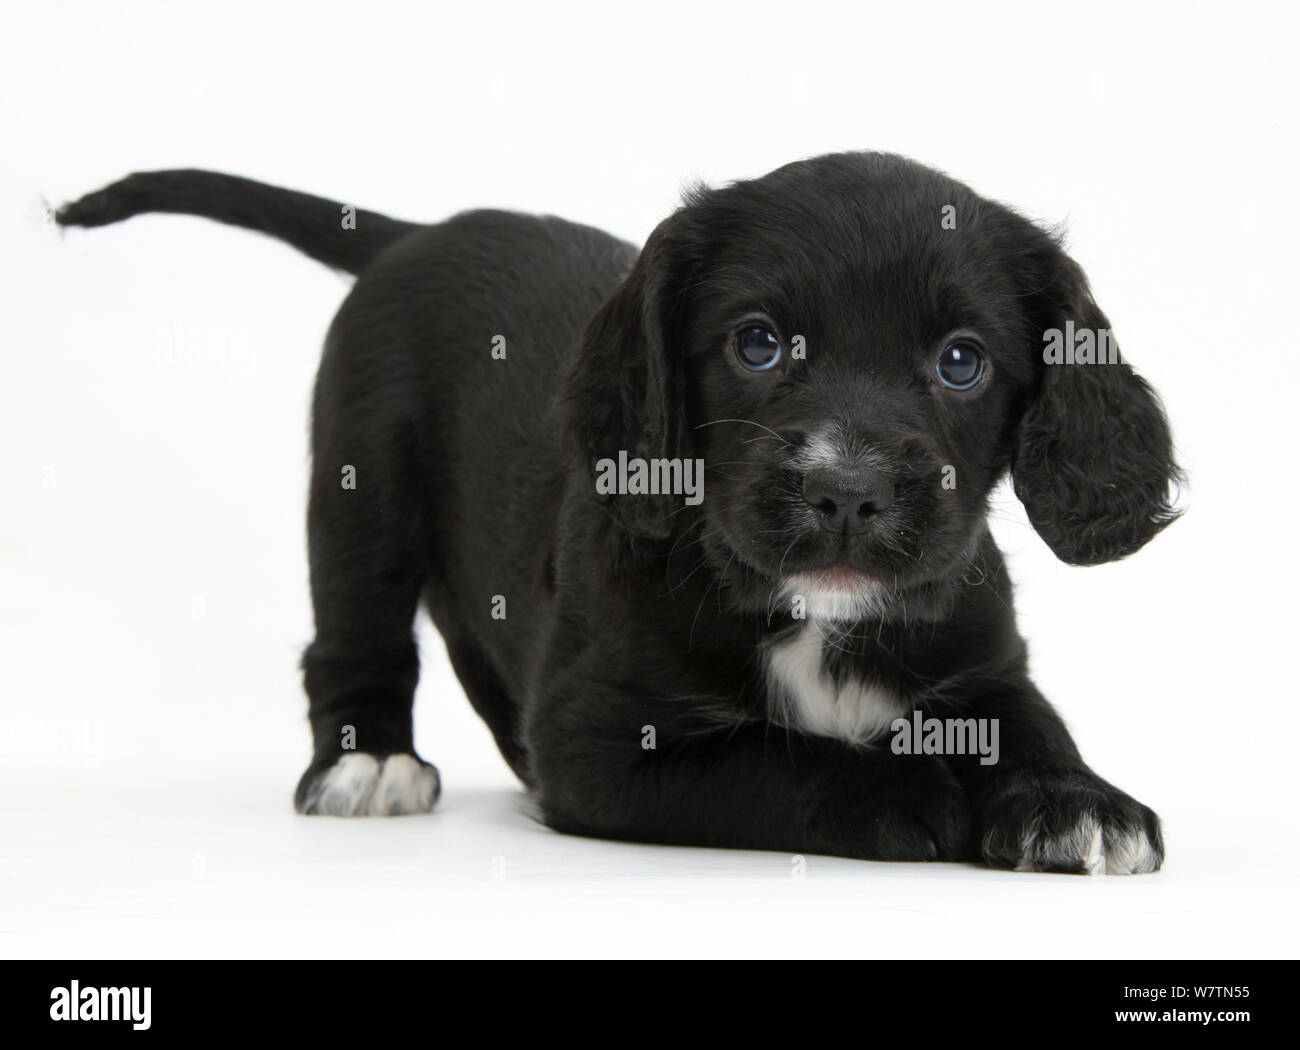 Black Cocker Spaniel Puppy In Play Bow Against White Background Stock Photo Alamy